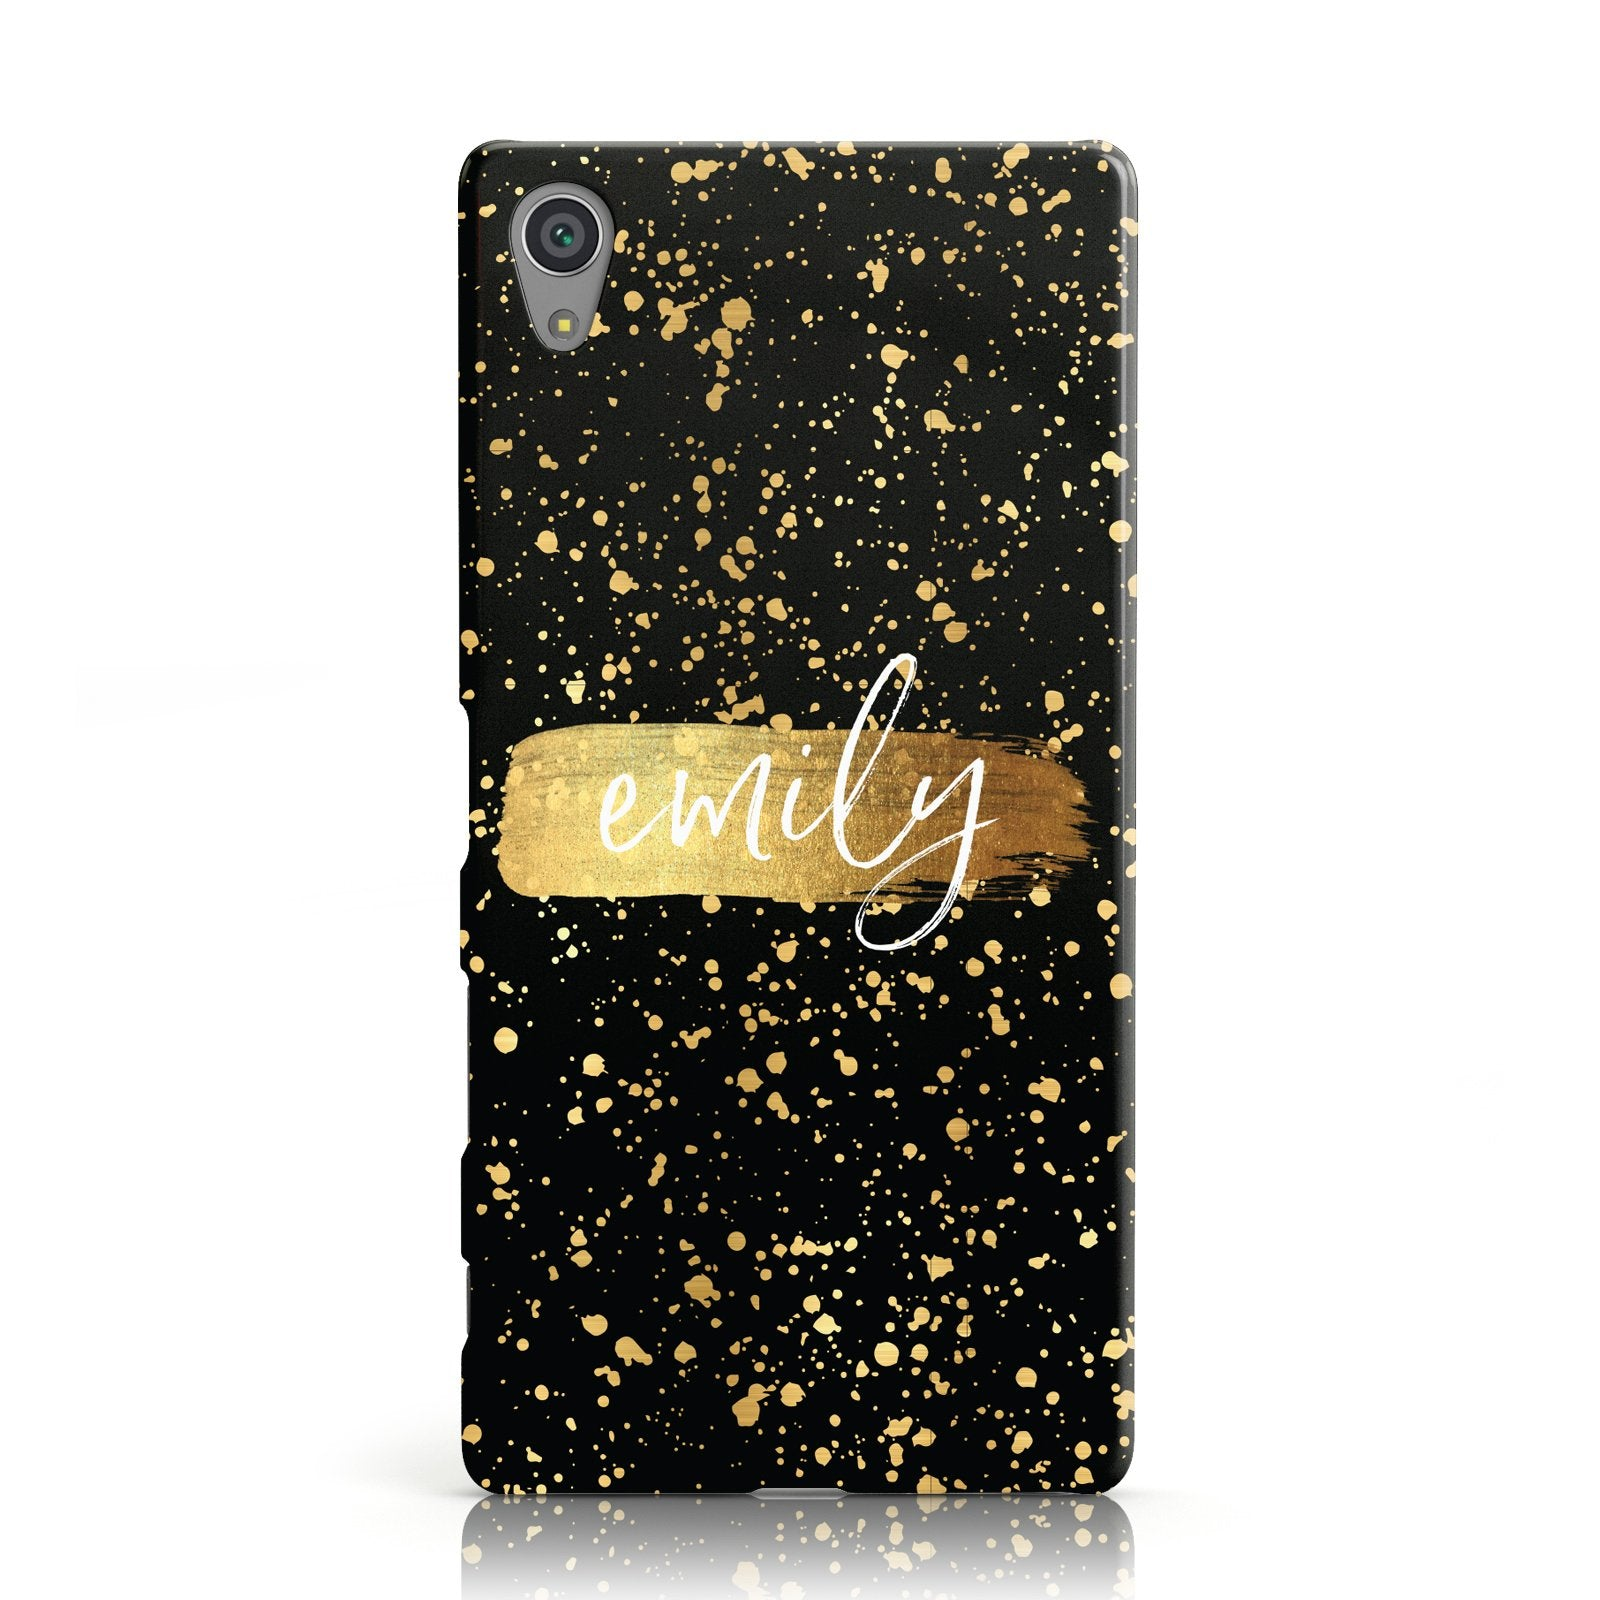 Personalised Black & Gold Ink Splat Name Sony Xperia Case